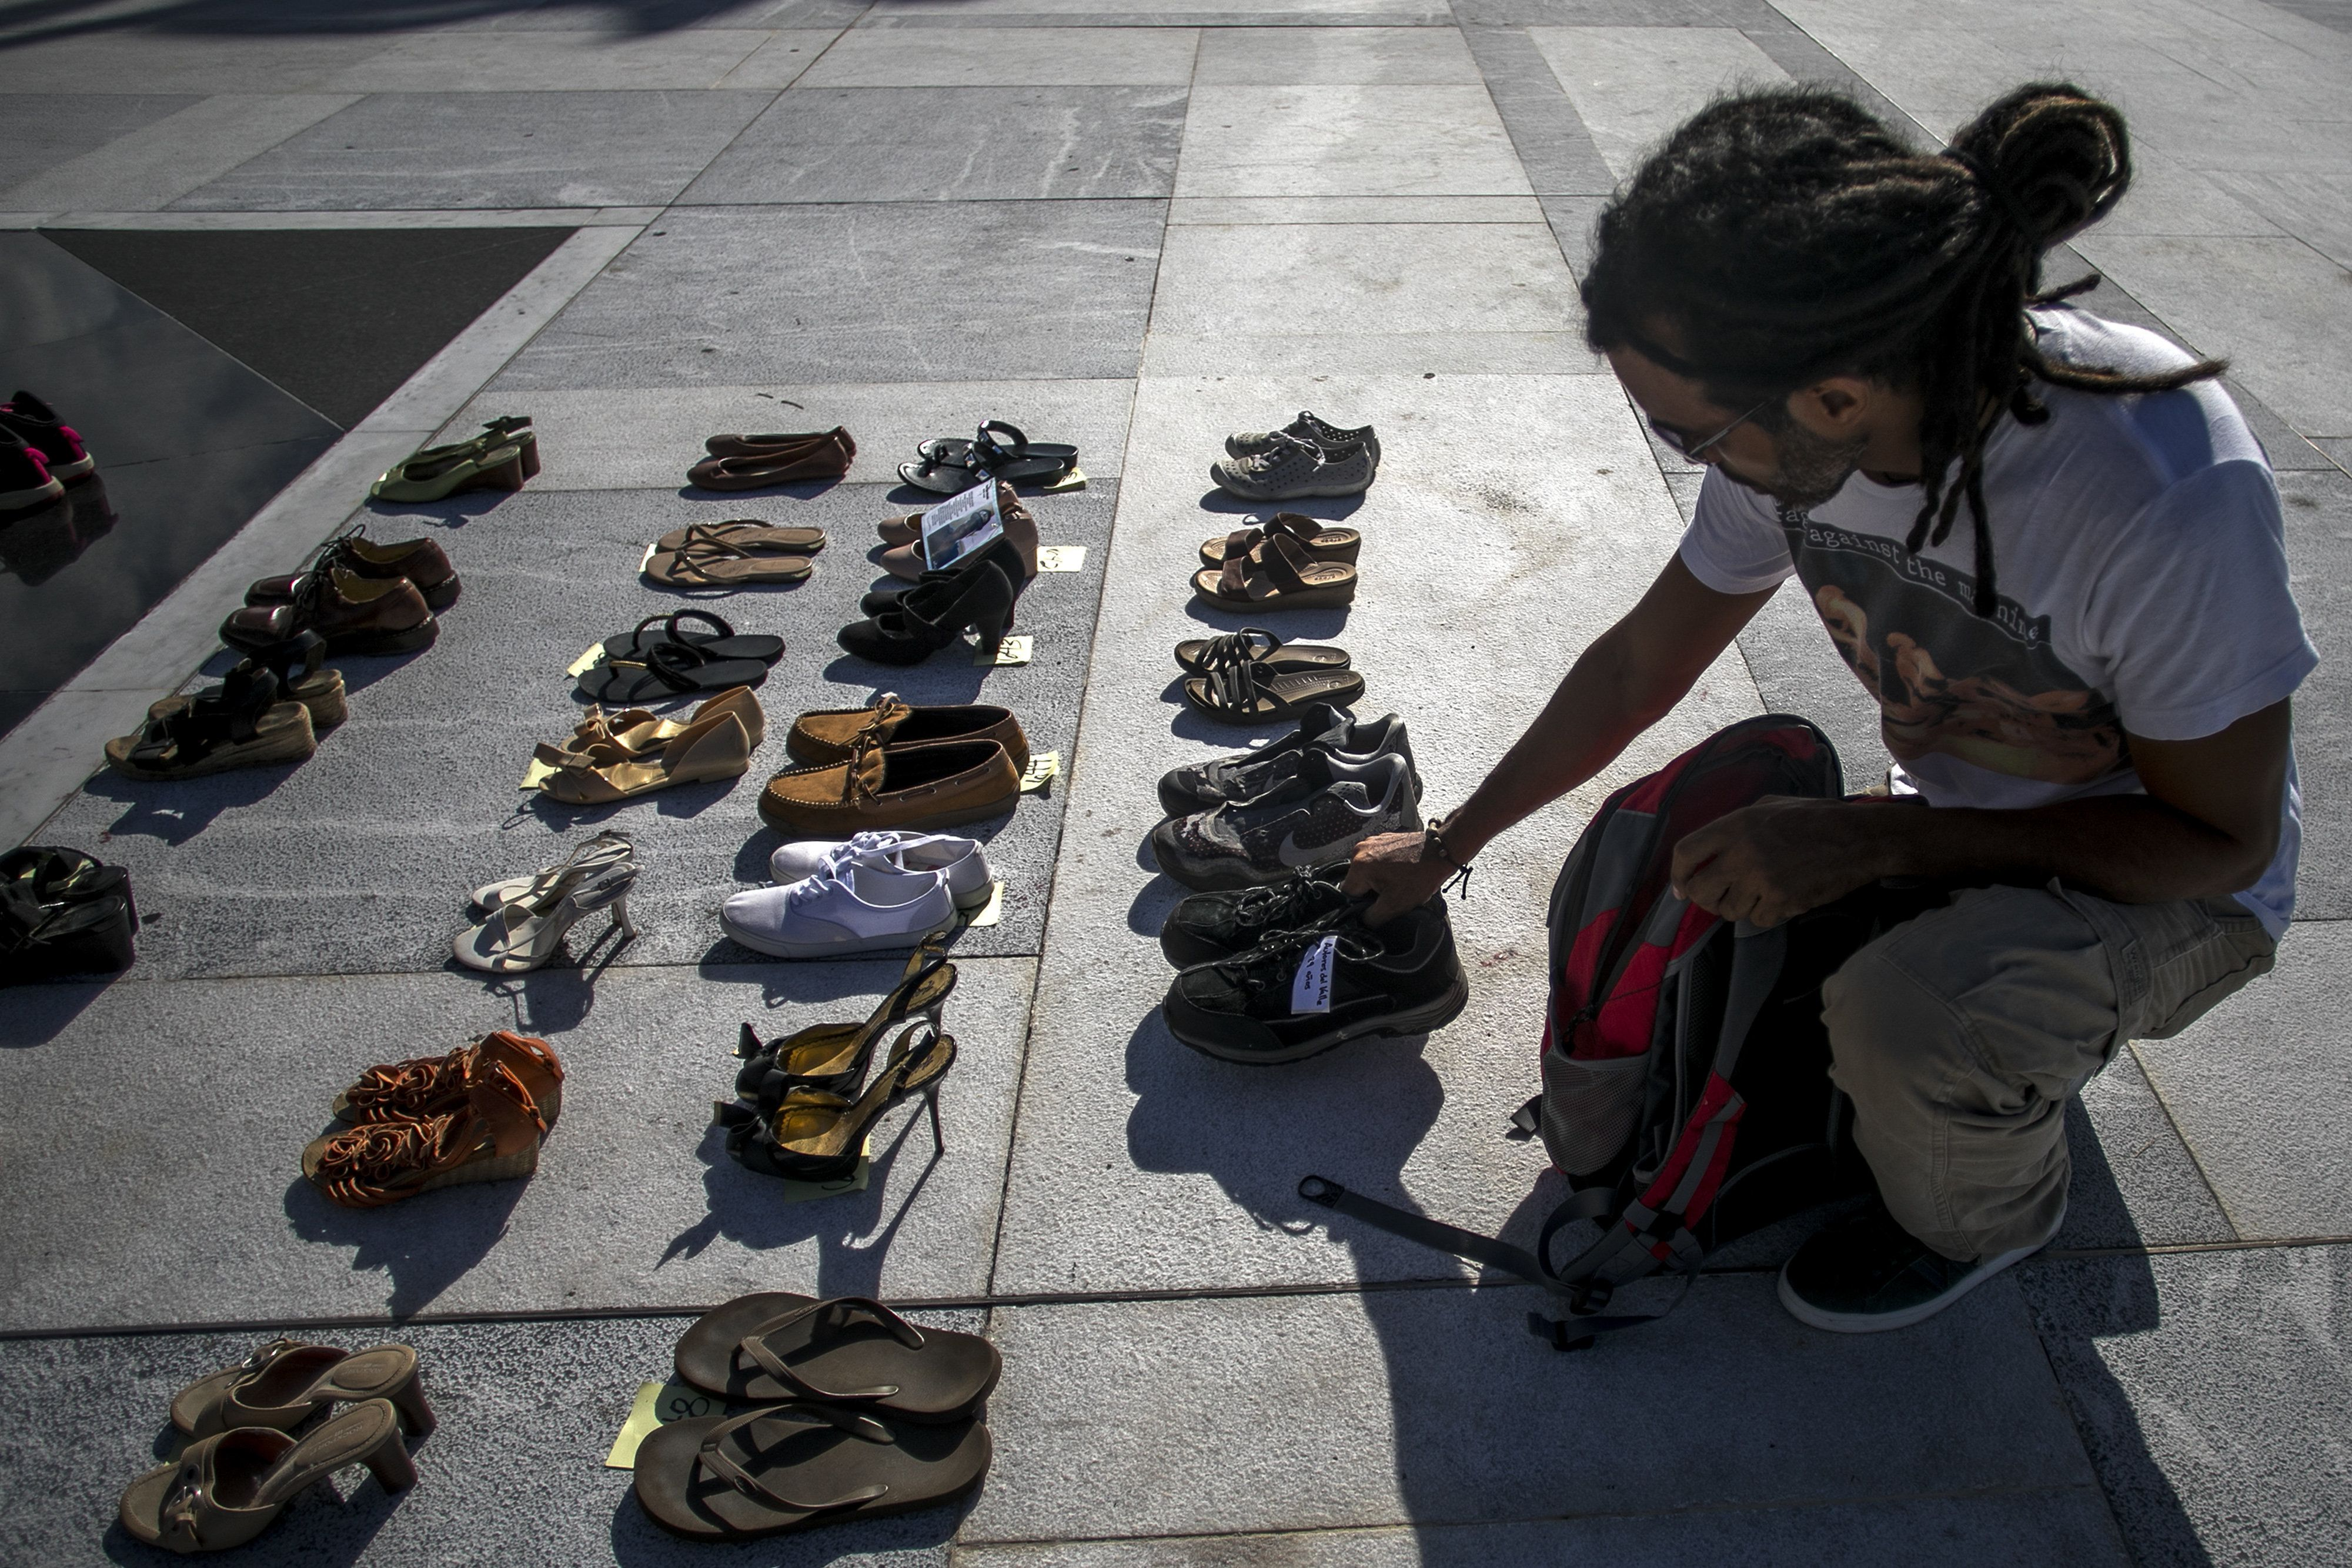 A demonstrator places an empty pair of shoes on display outside the Capitol building during a protest against the government's reporting of the death toll from  Hurricane Maria in San Juan, Puerto Rico, on Friday, June 1, 2018. Hurricane Maria probably killed about 5,000 people in Puerto Rico last year even though the official count remains at just 64, according to a Harvard University study released Tuesday. Photographer: Xavier Garcia/Bloomberg via Getty Images